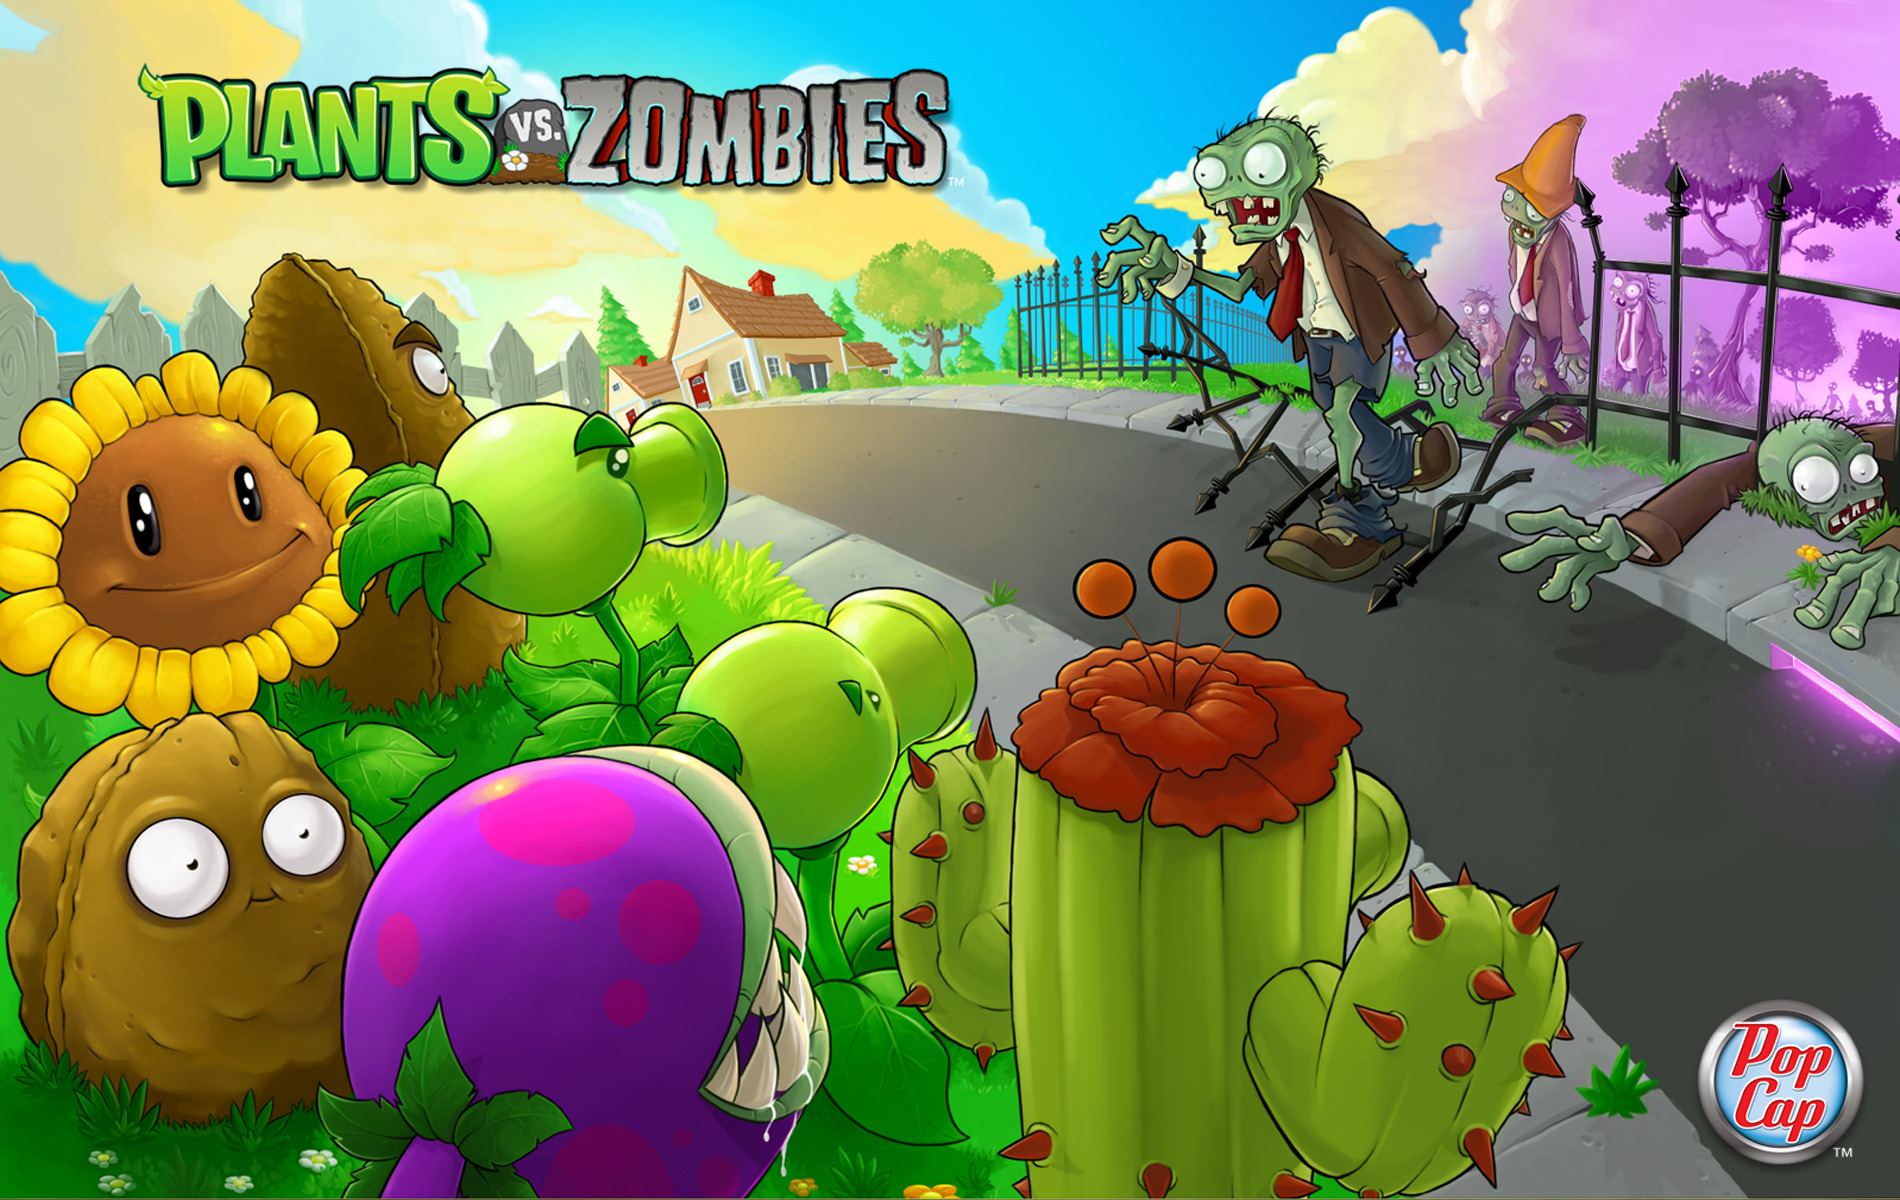 Арт к игре Plants vs. Zombies